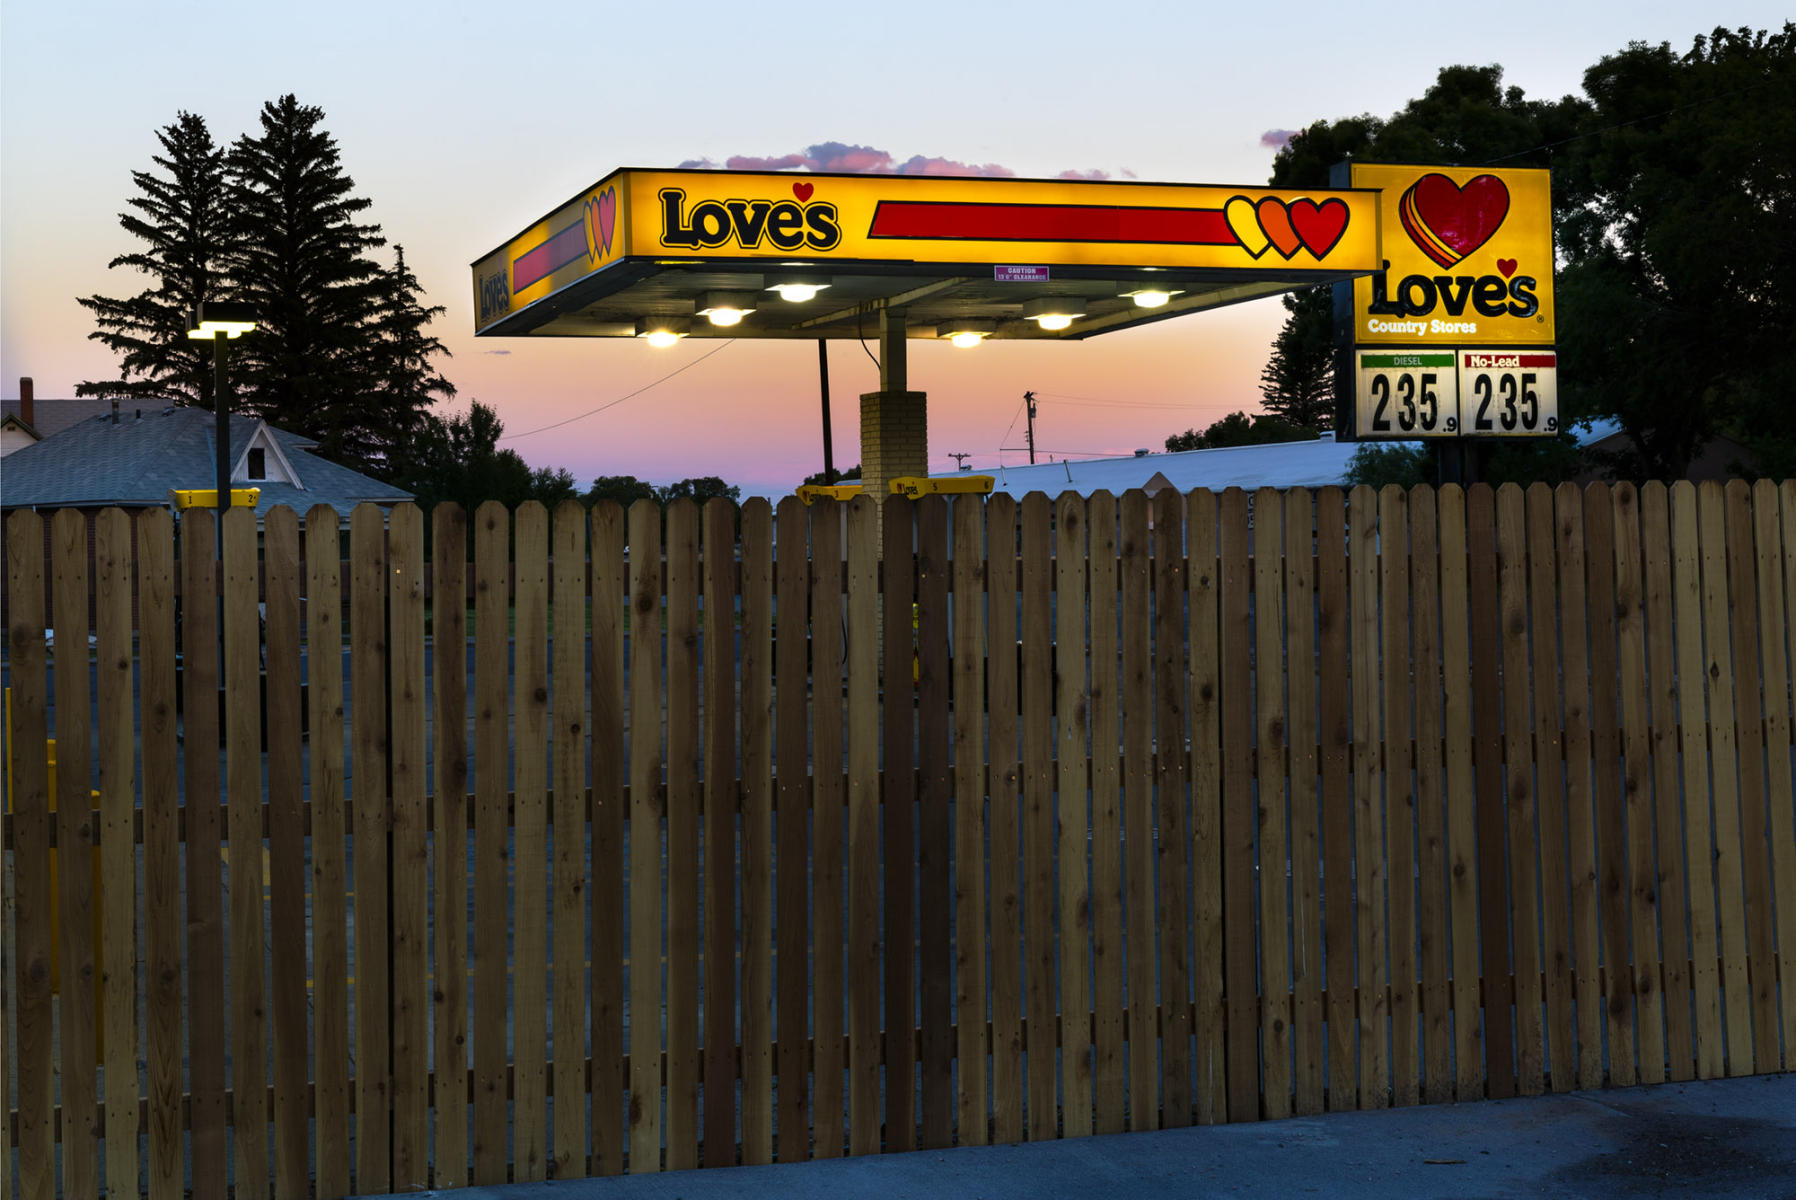 View of Love's gas station from the parking lot of the hotel in Monte Vista, CO. : Visiting Mom : NY - Portrait Photographer Video, Architectural, Corporate Editorial Location Photography